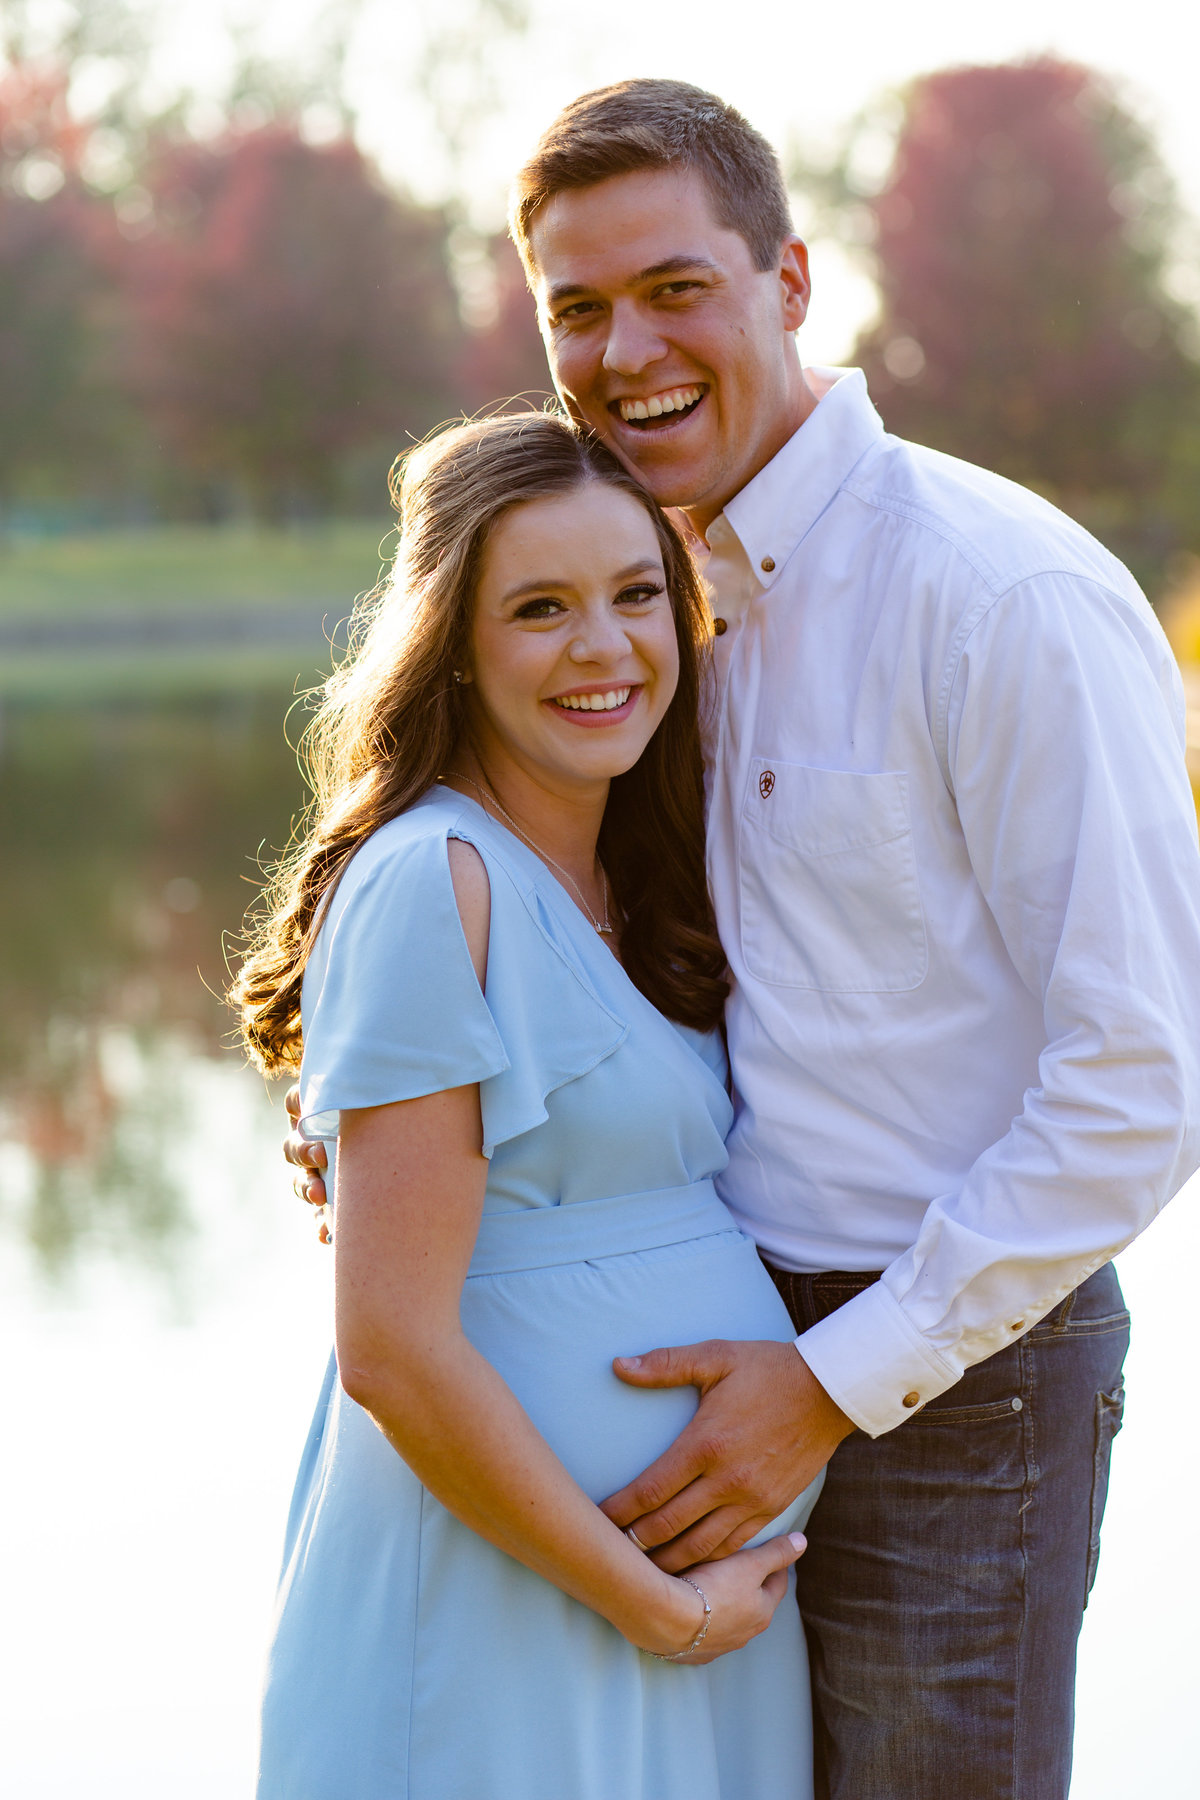 Fall Sunset Maternity Session with blue maxi dress standing by water with red trees  at Pagoda Circle in Forest Park in St. Louis by Amy Britton Photography Photographer  in St. Louis